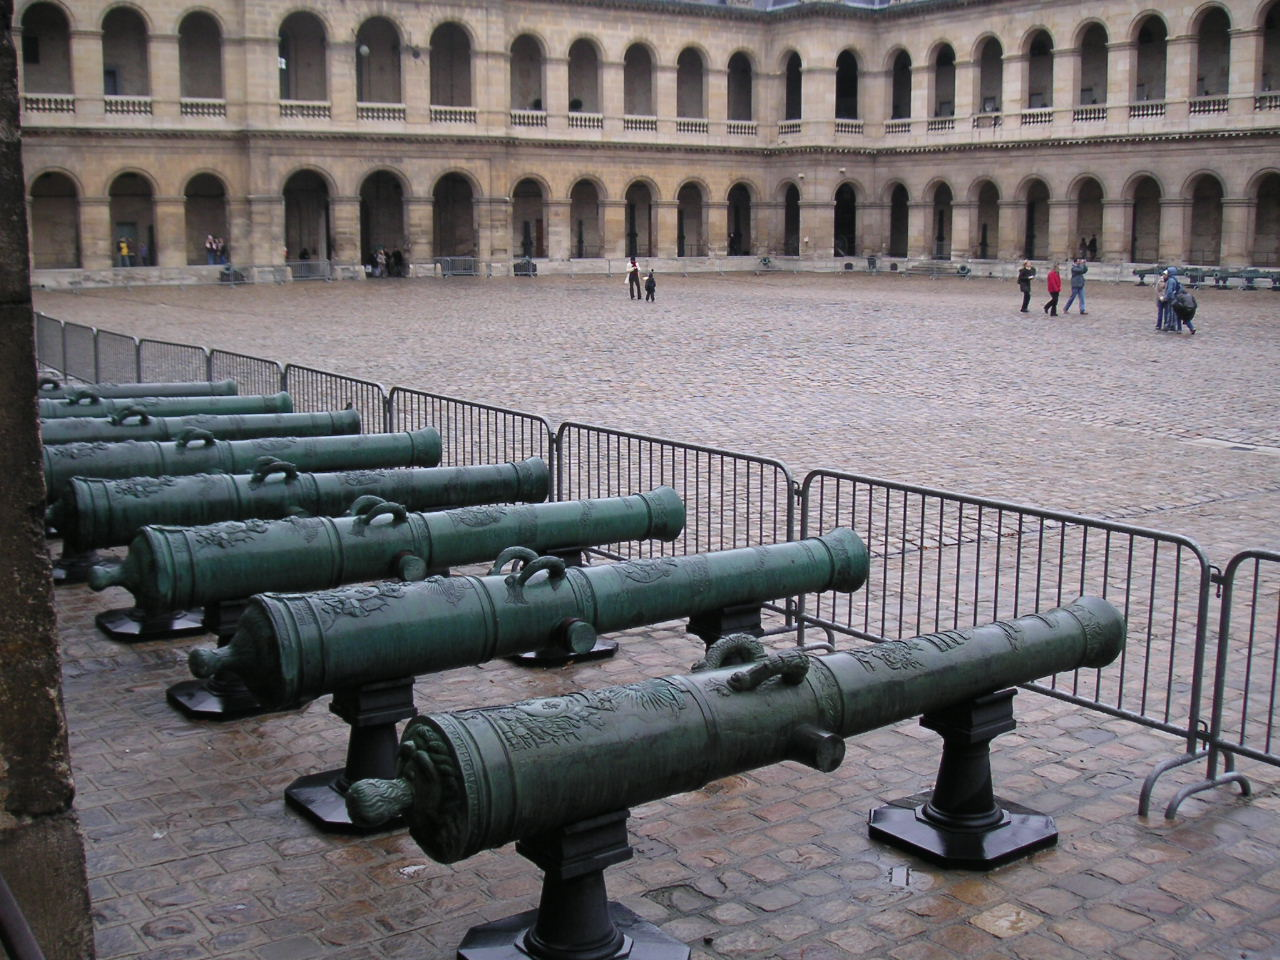 Cannons